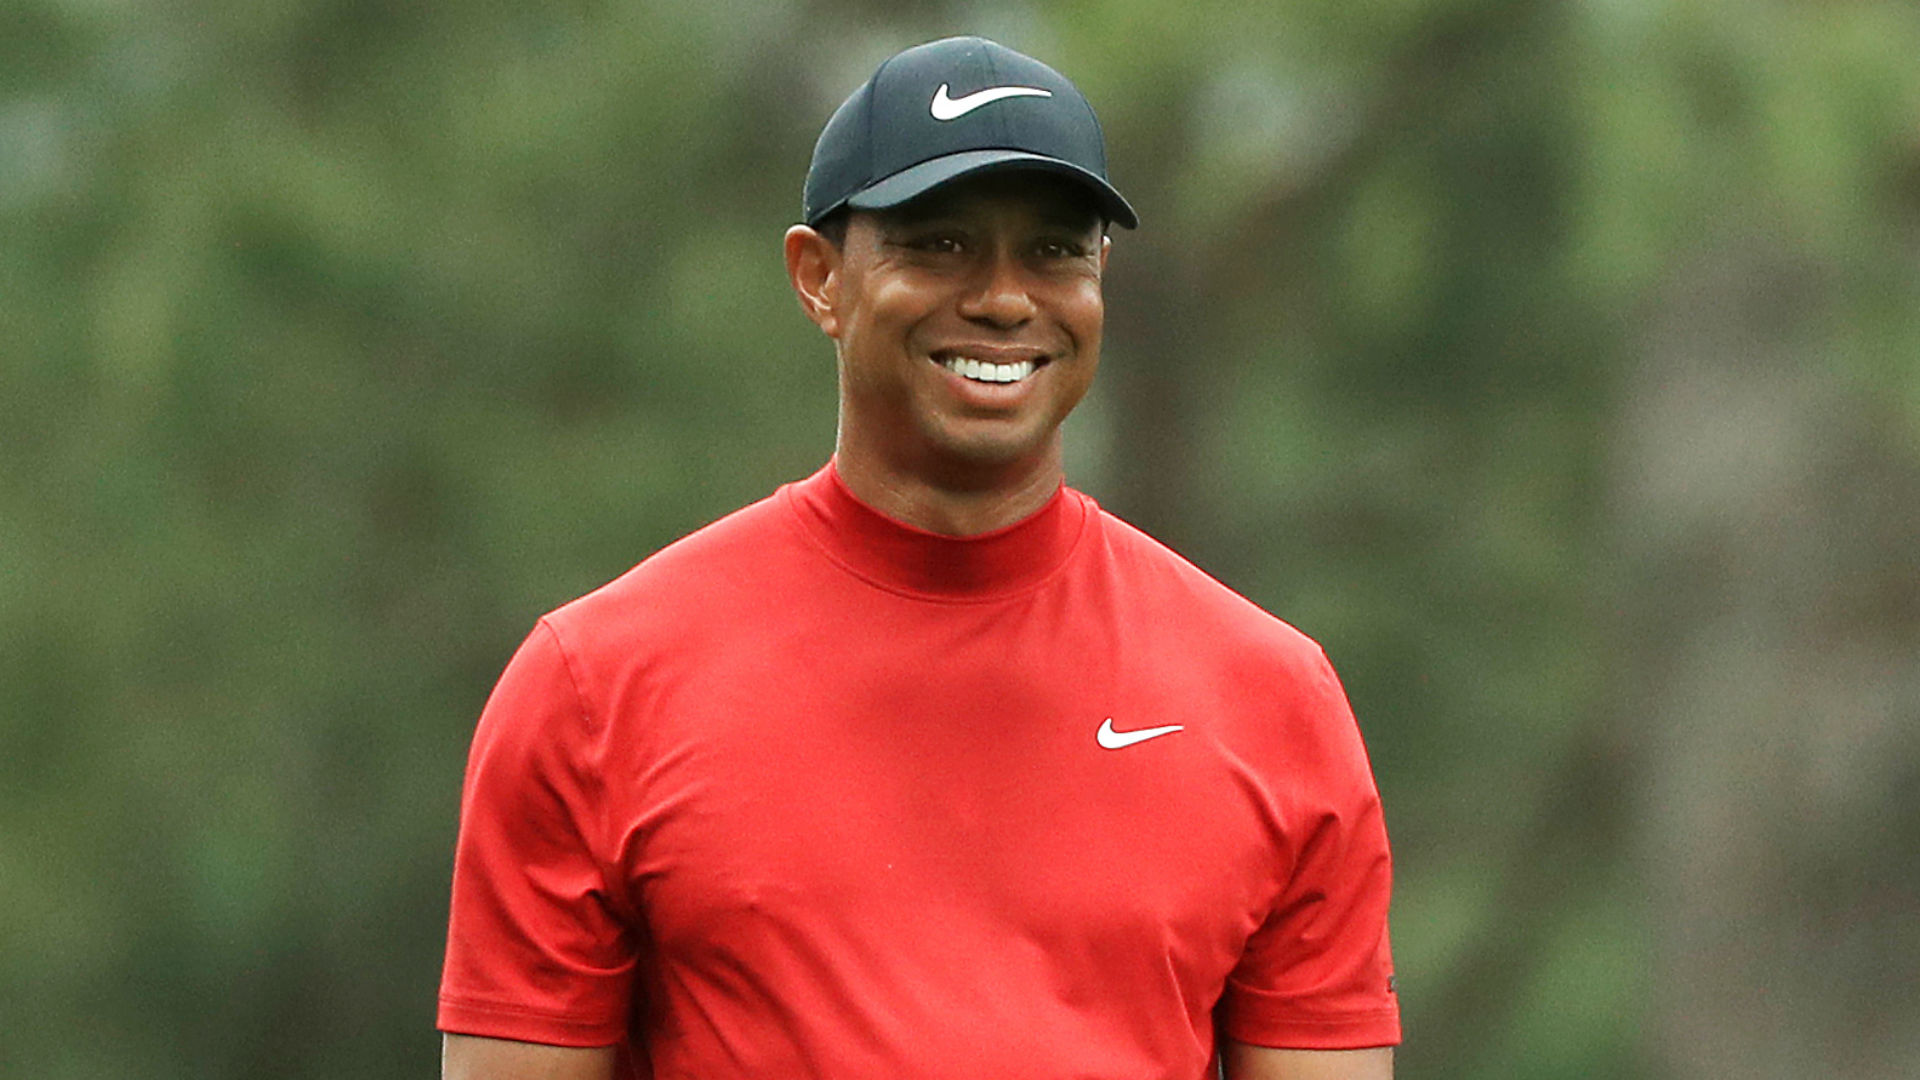 BREAKING NEWS: Tiger Woods wins the Masters